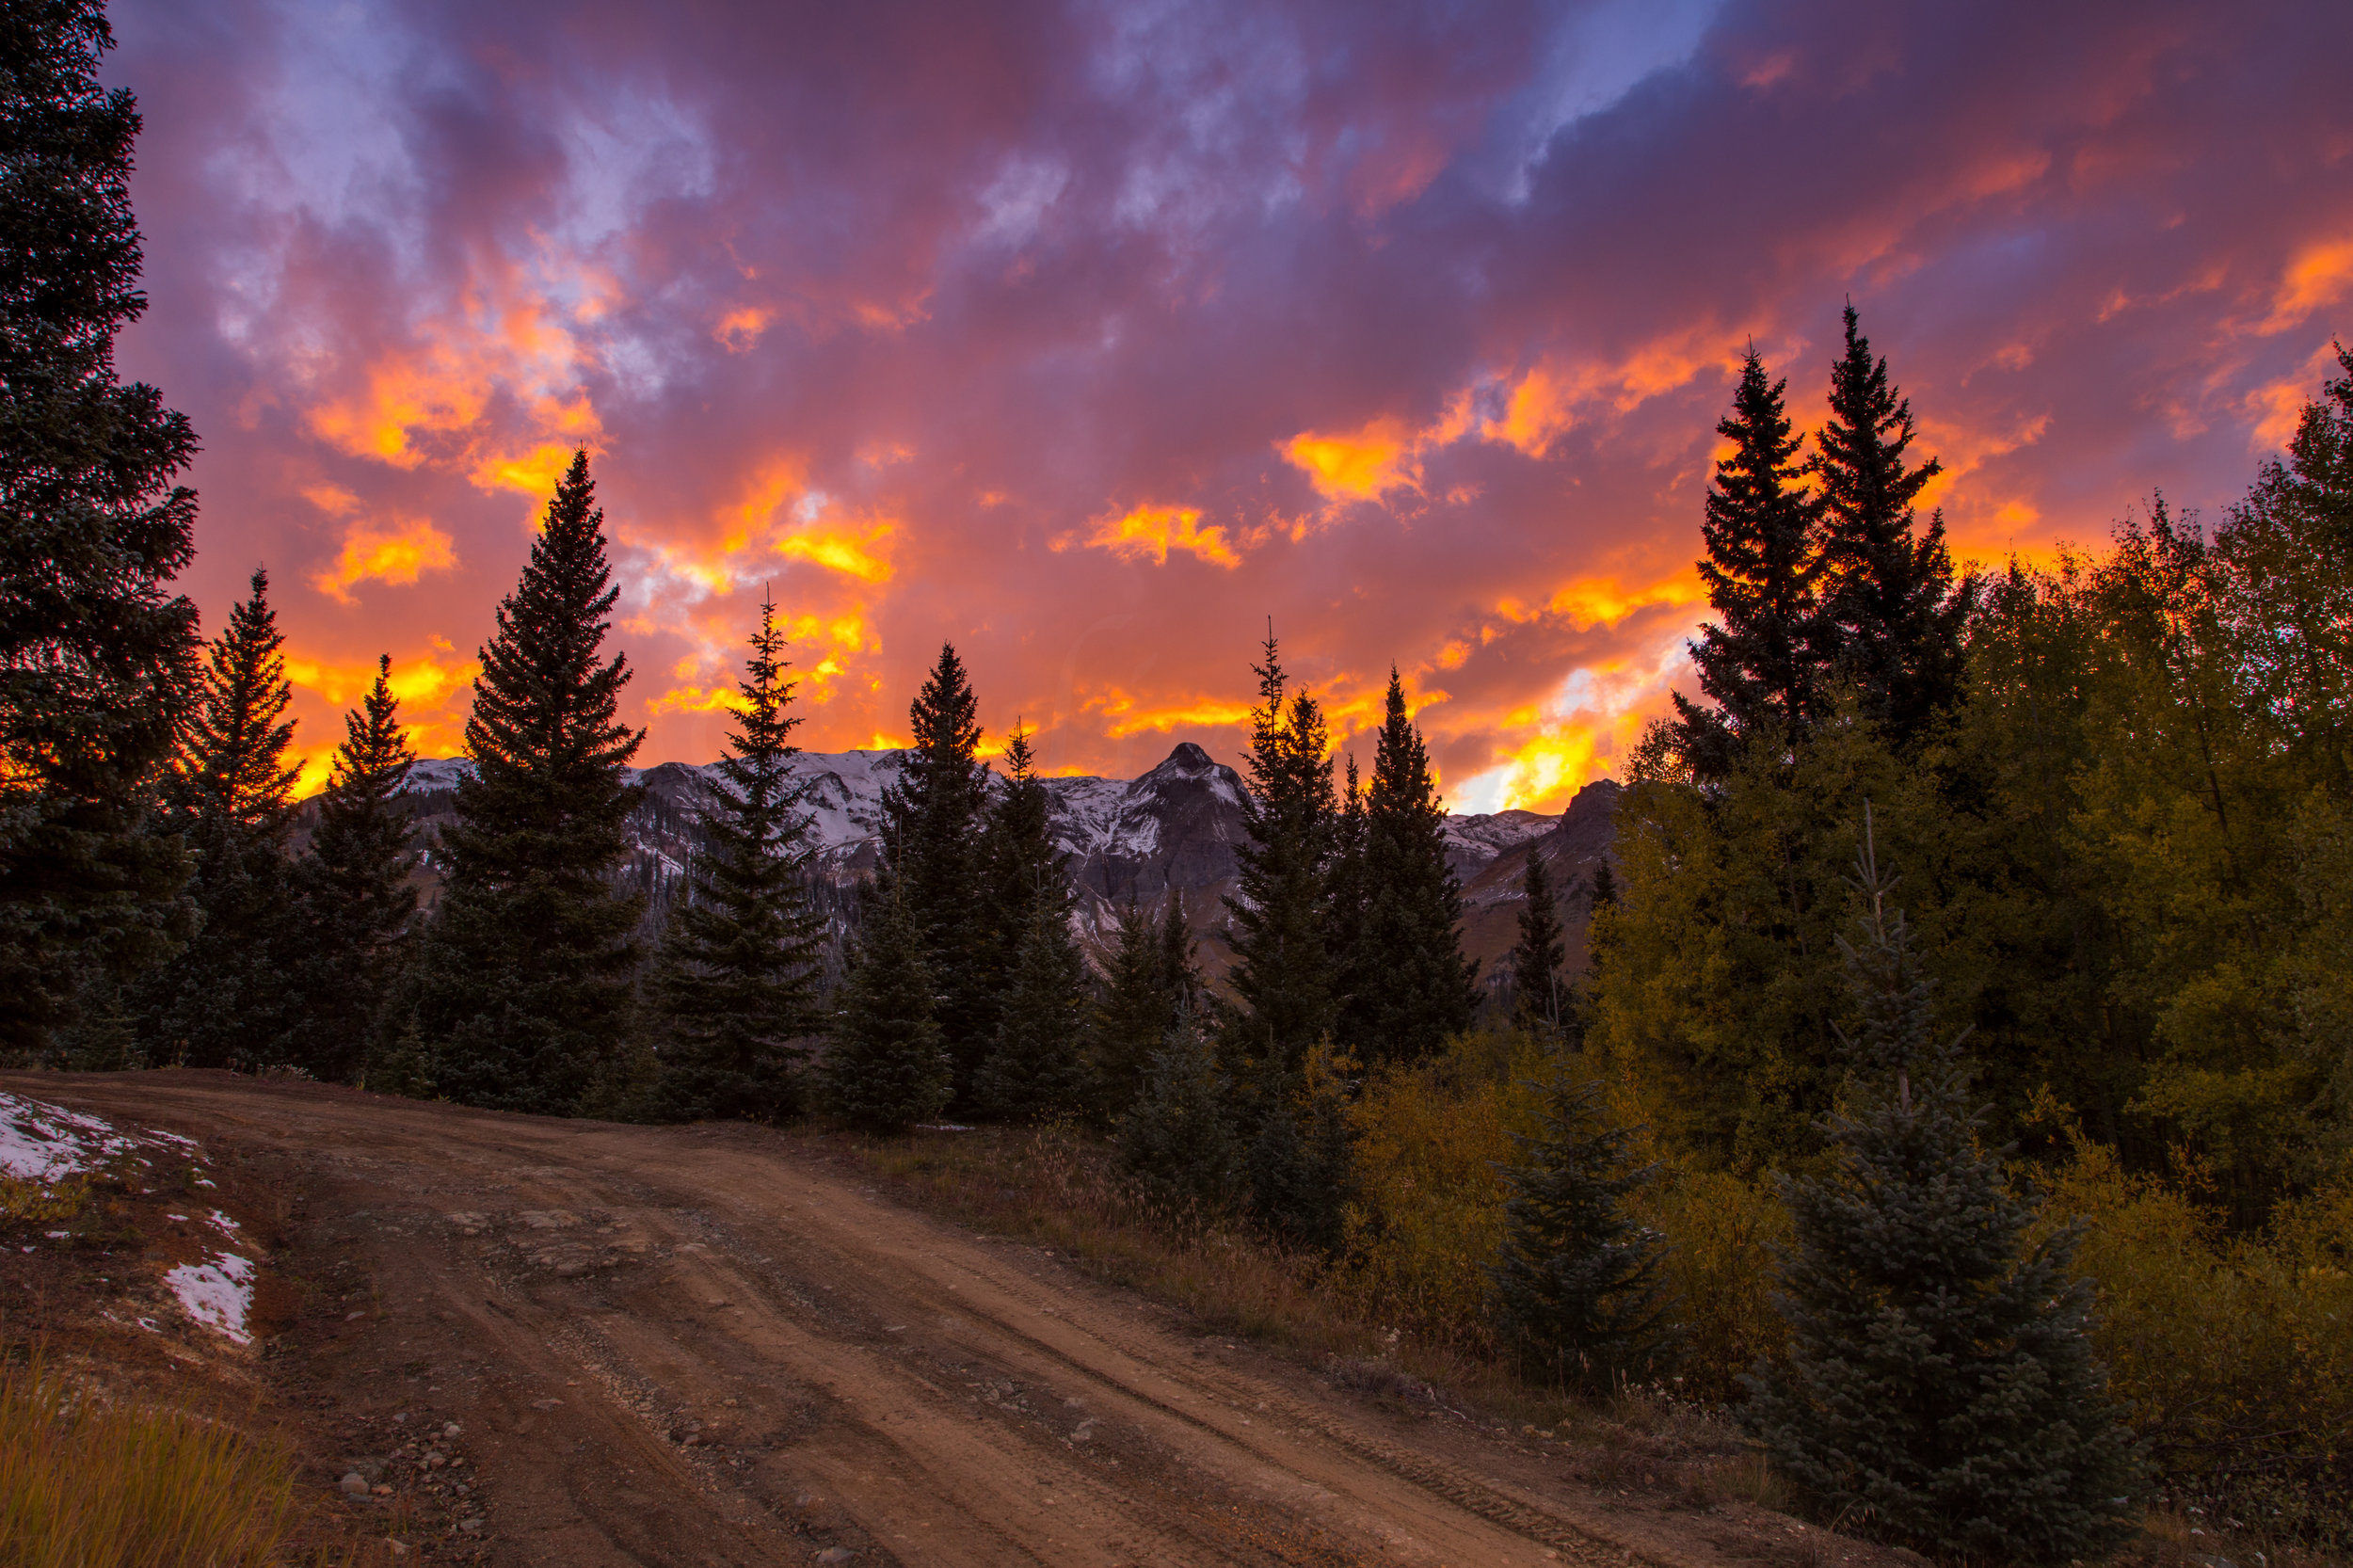 Red Mountain Sunset, Image # 5351